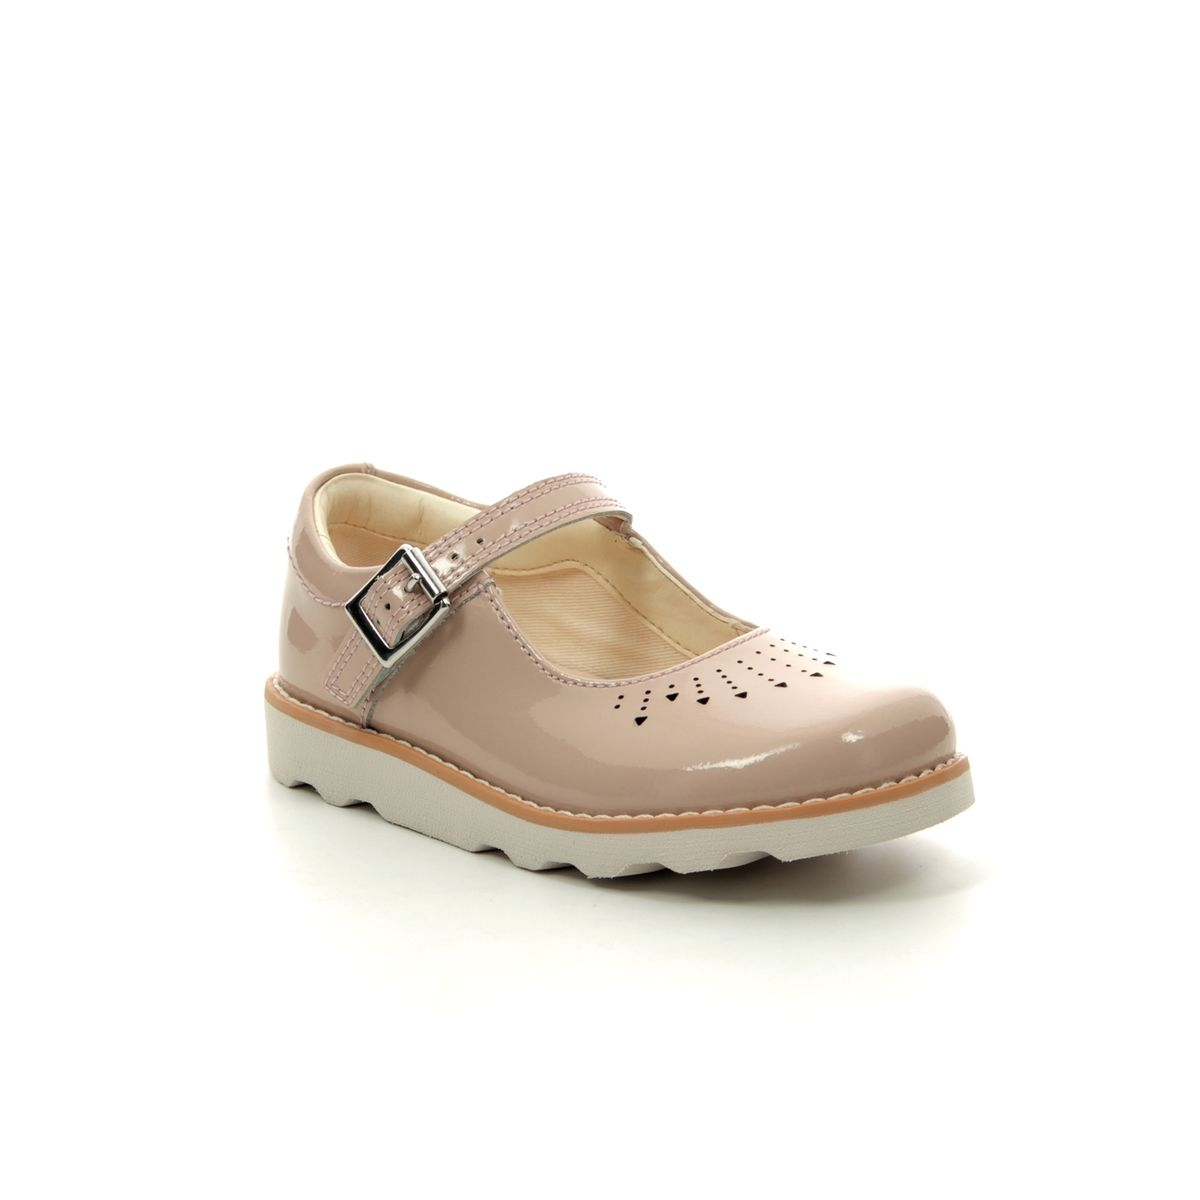 5a720f98fd8b Clarks First Shoes - Nude Patent - 415396F CROWN JUMP T